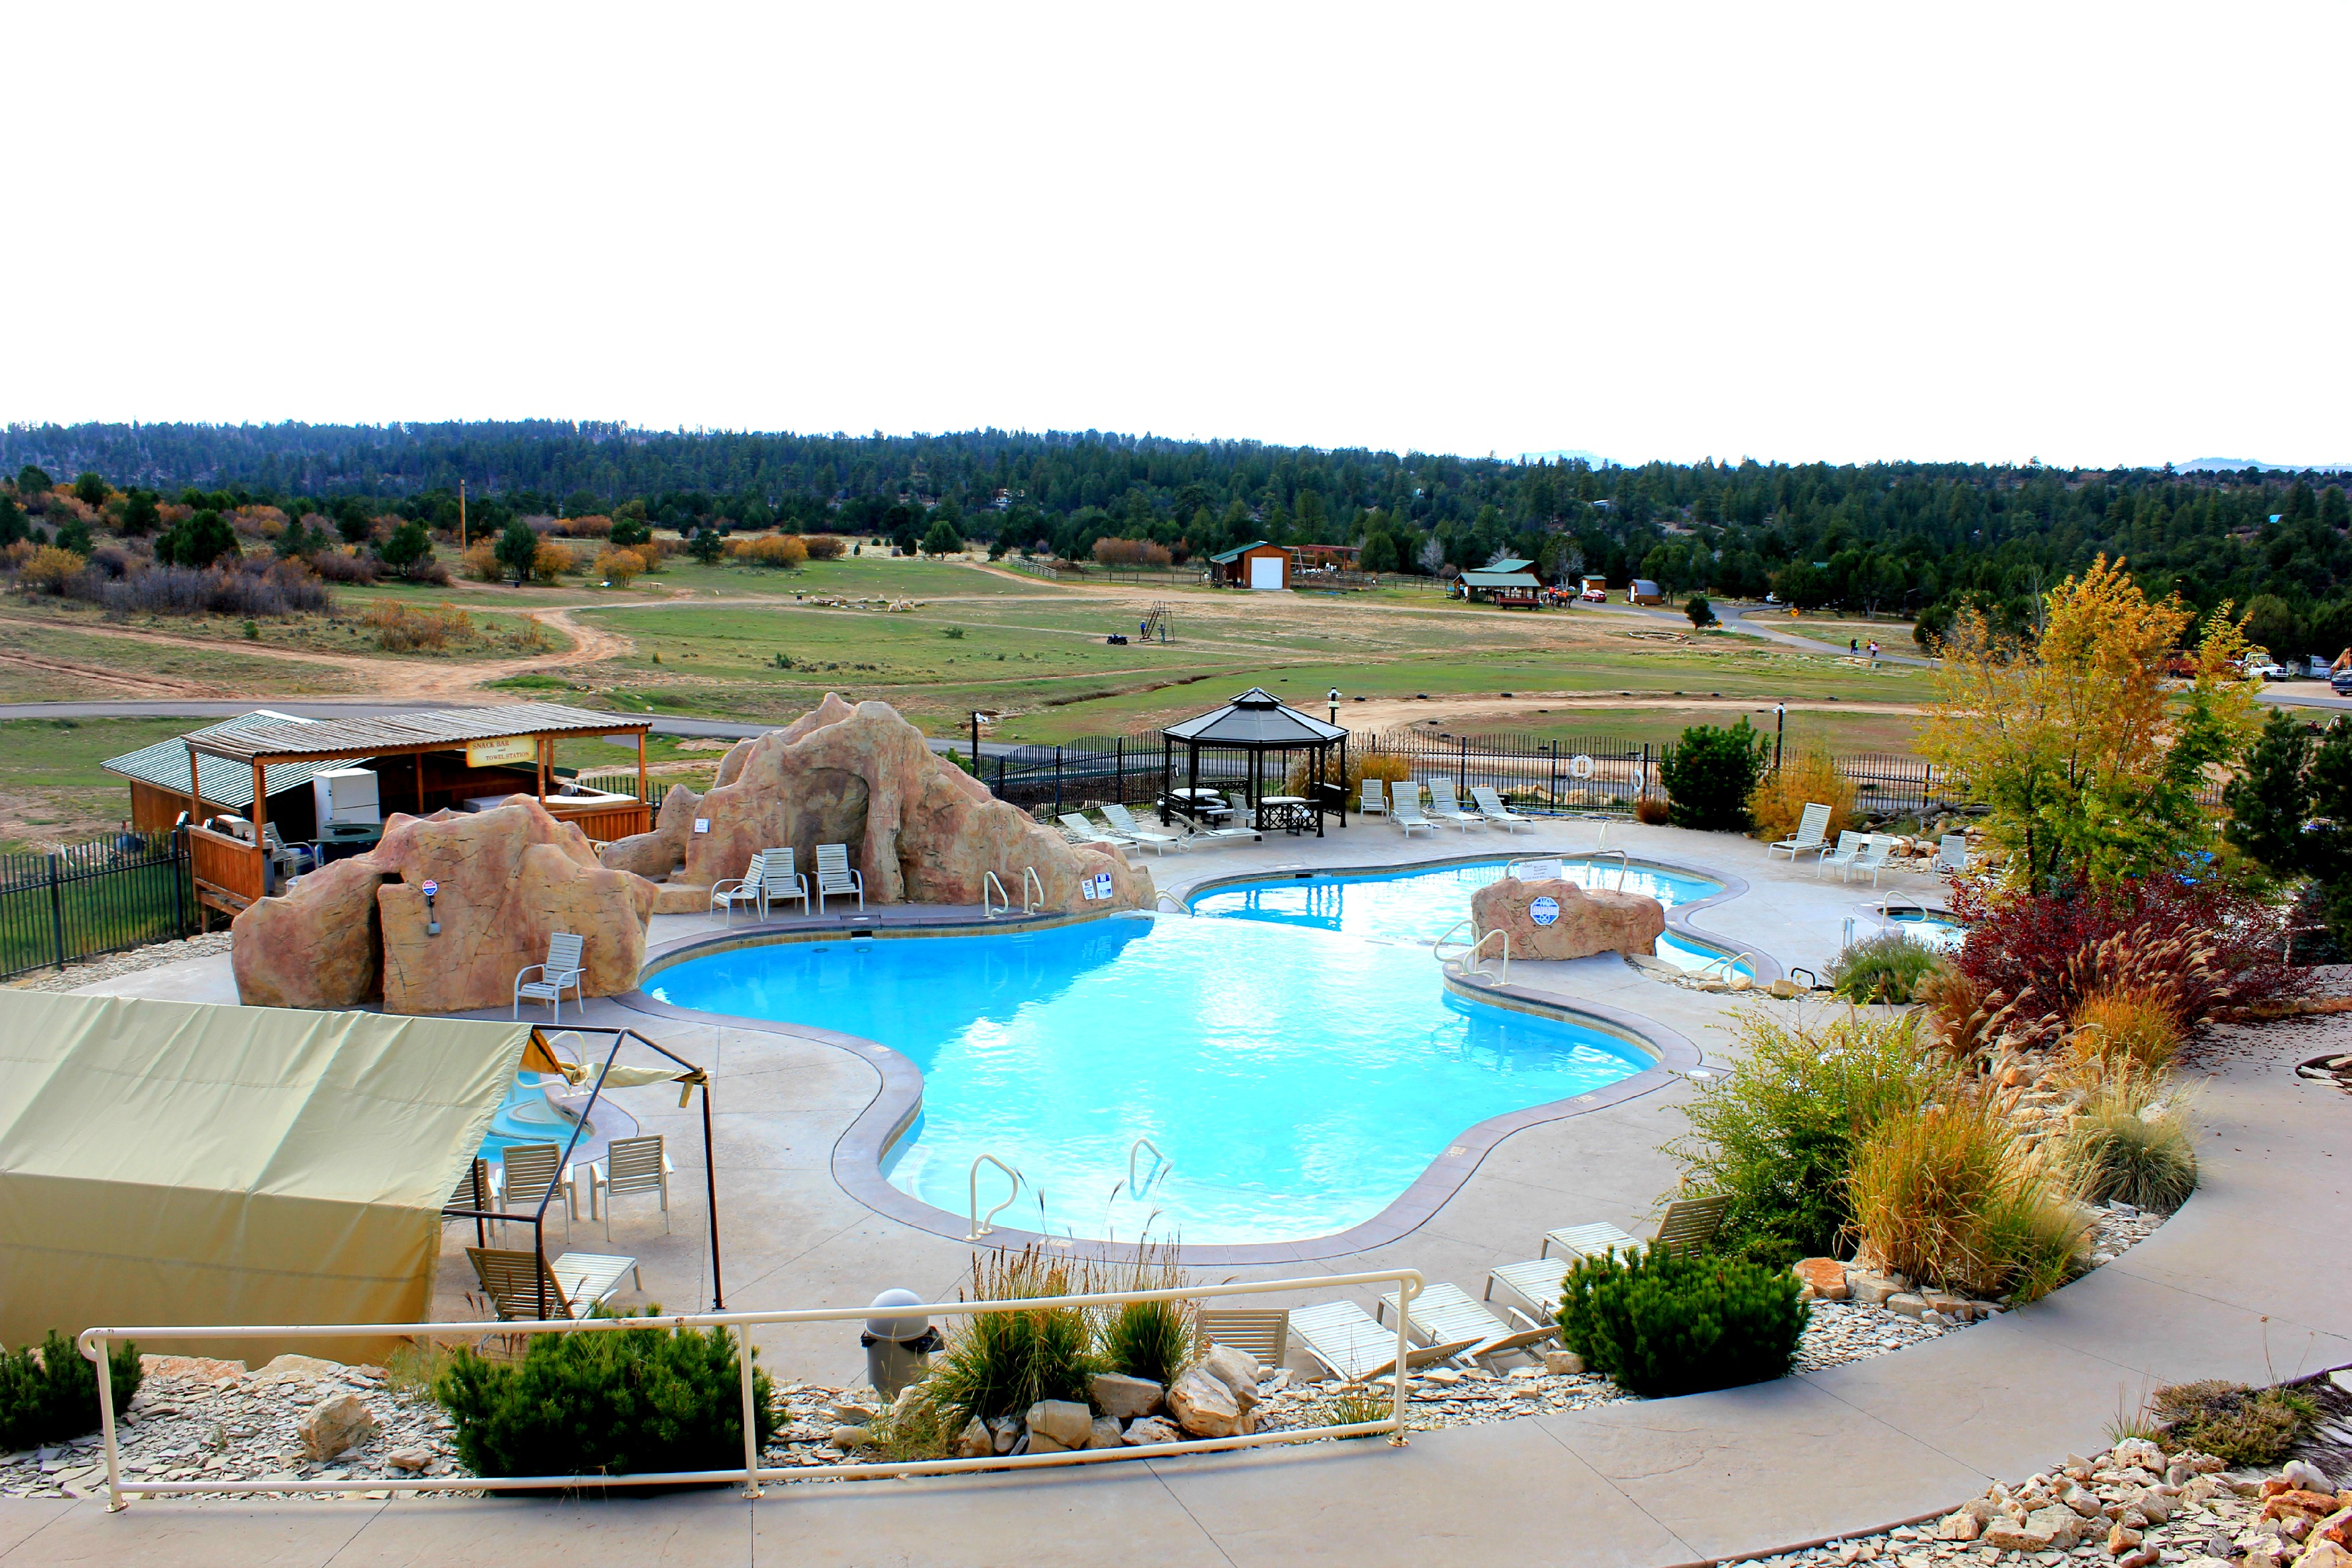 ponderosa senior personals Sun city is a census-designated place and unincorporated community in maricopa county, arizona, united states, that is within the phoenix metropolitan area.